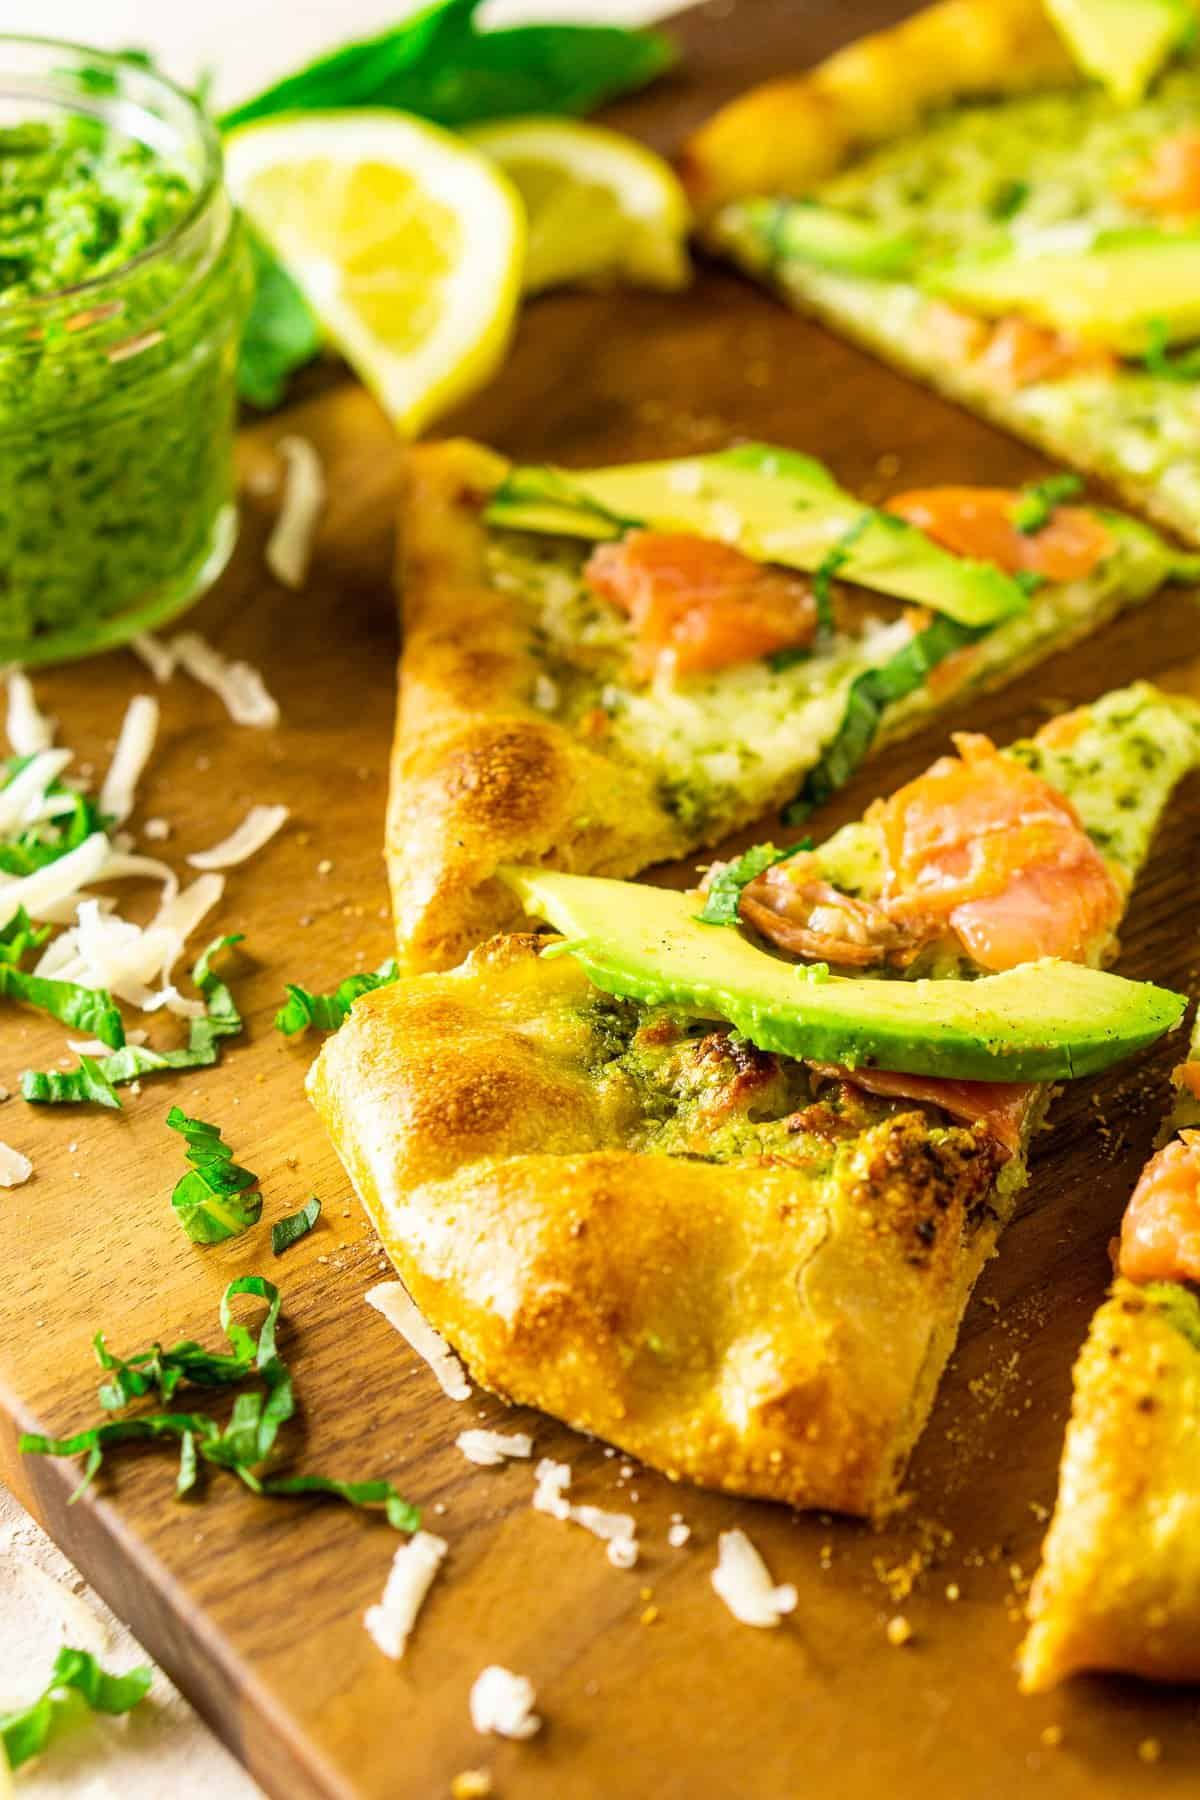 The smoked salmon and avocado pizza with pesto after it's been sliced.